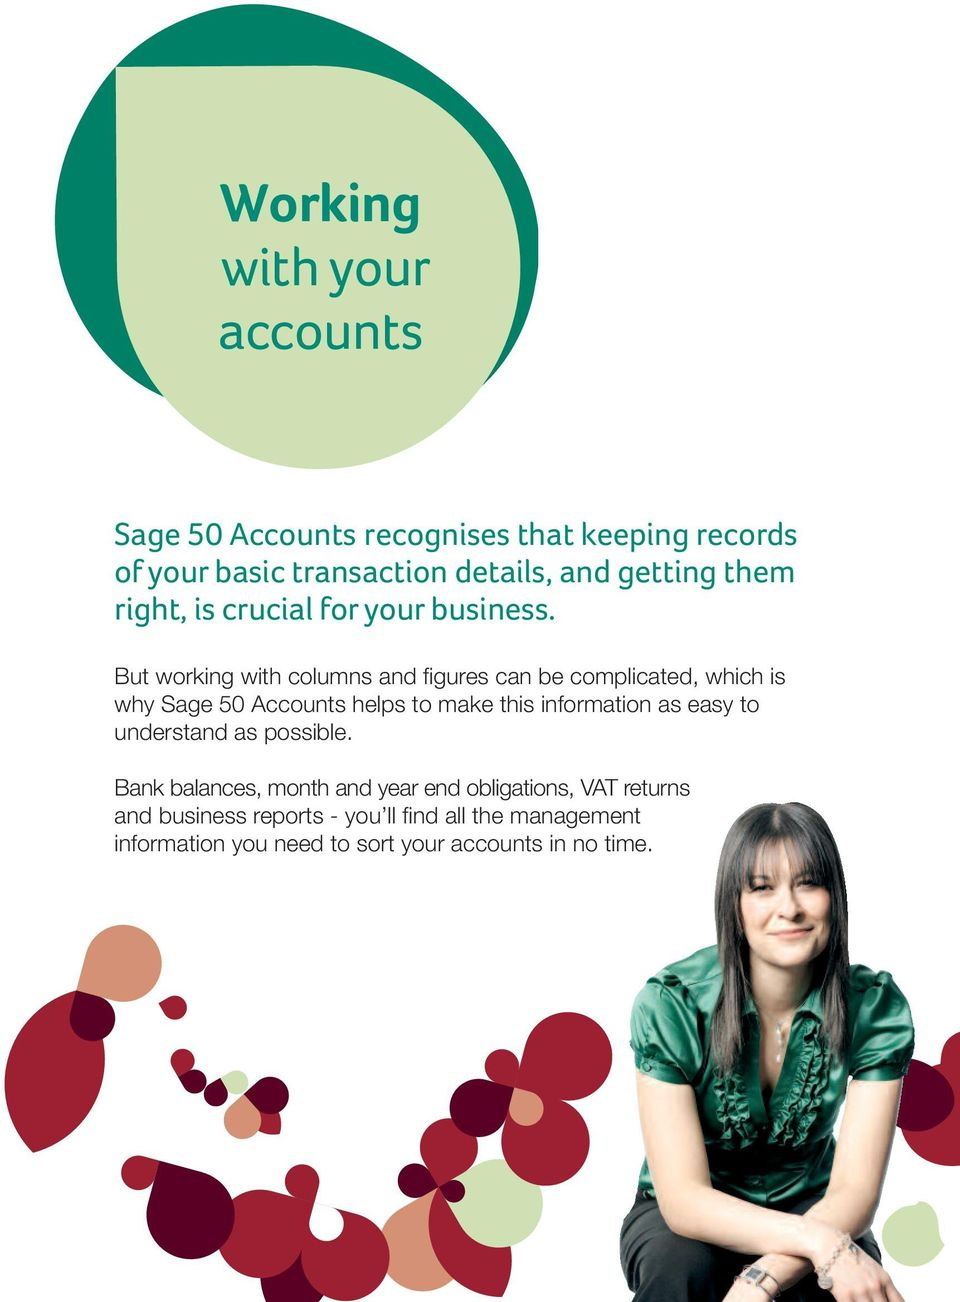 But working with columns and figures can be complicated, which is why Sage 50 Accounts helps to make this information as